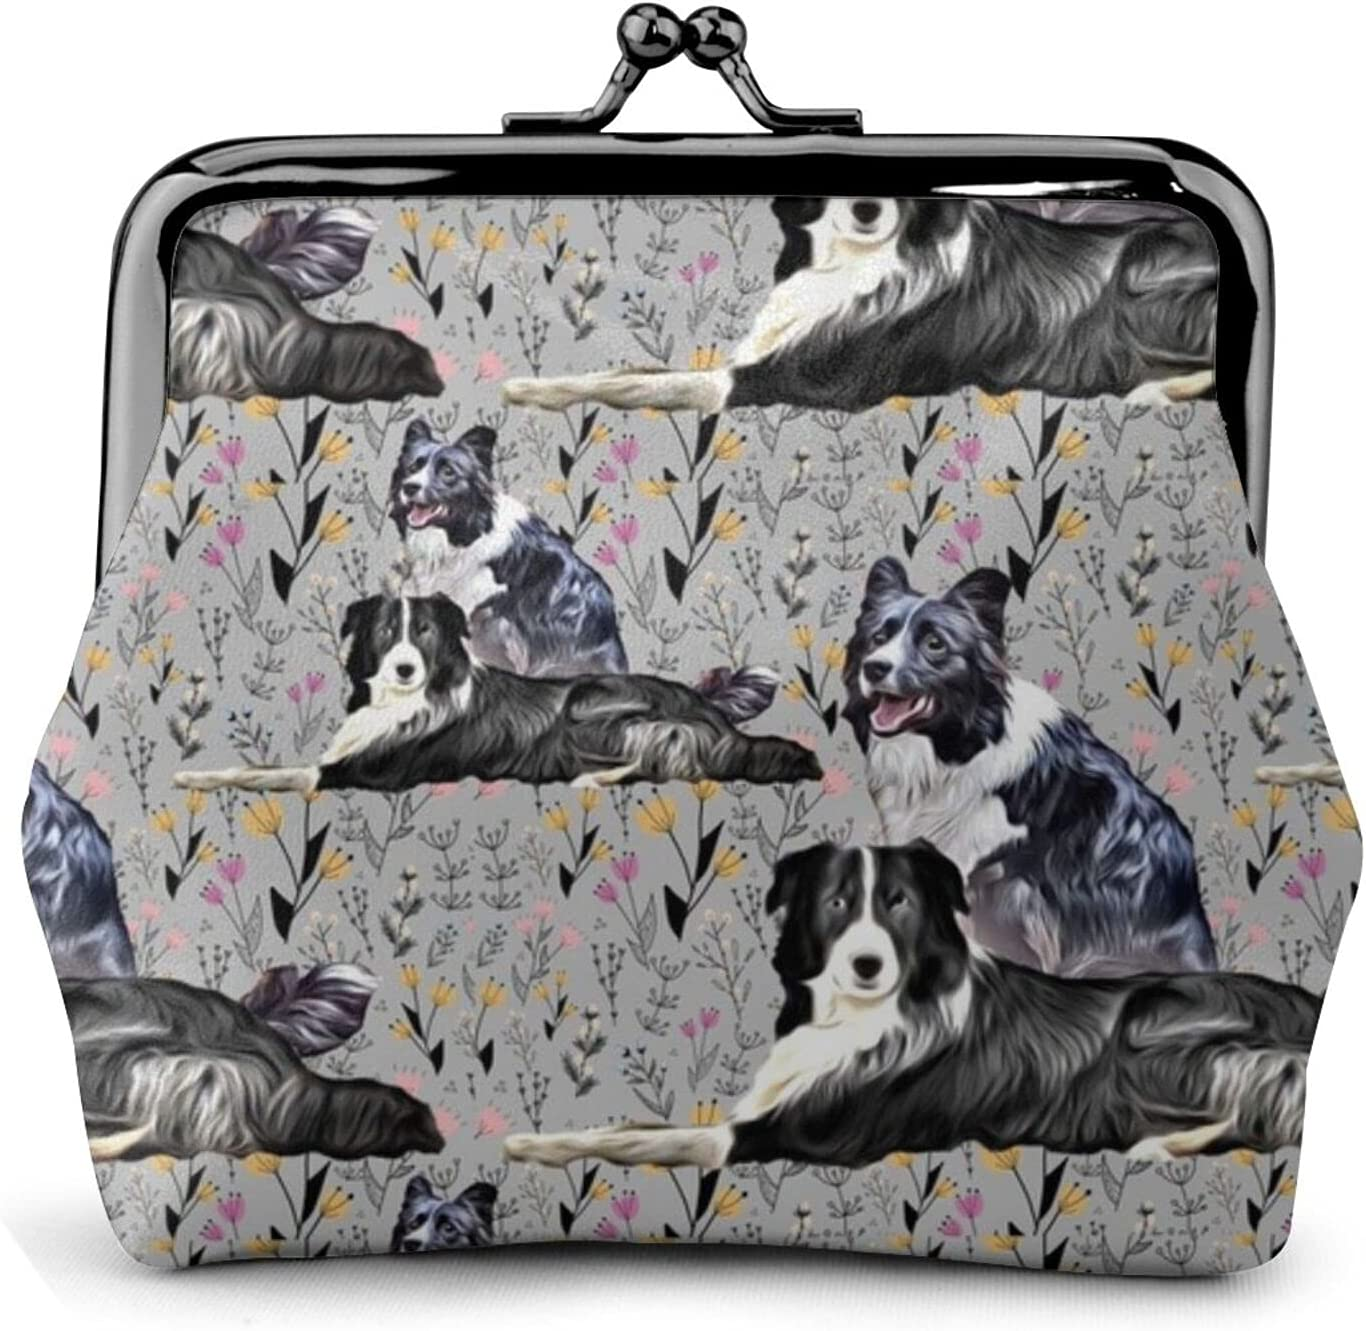 Border Collies D 866 Leather Coin Purse Kiss Lock Change Pouch Vintage Clasp Closure Buckle Wallet Small Women Gift